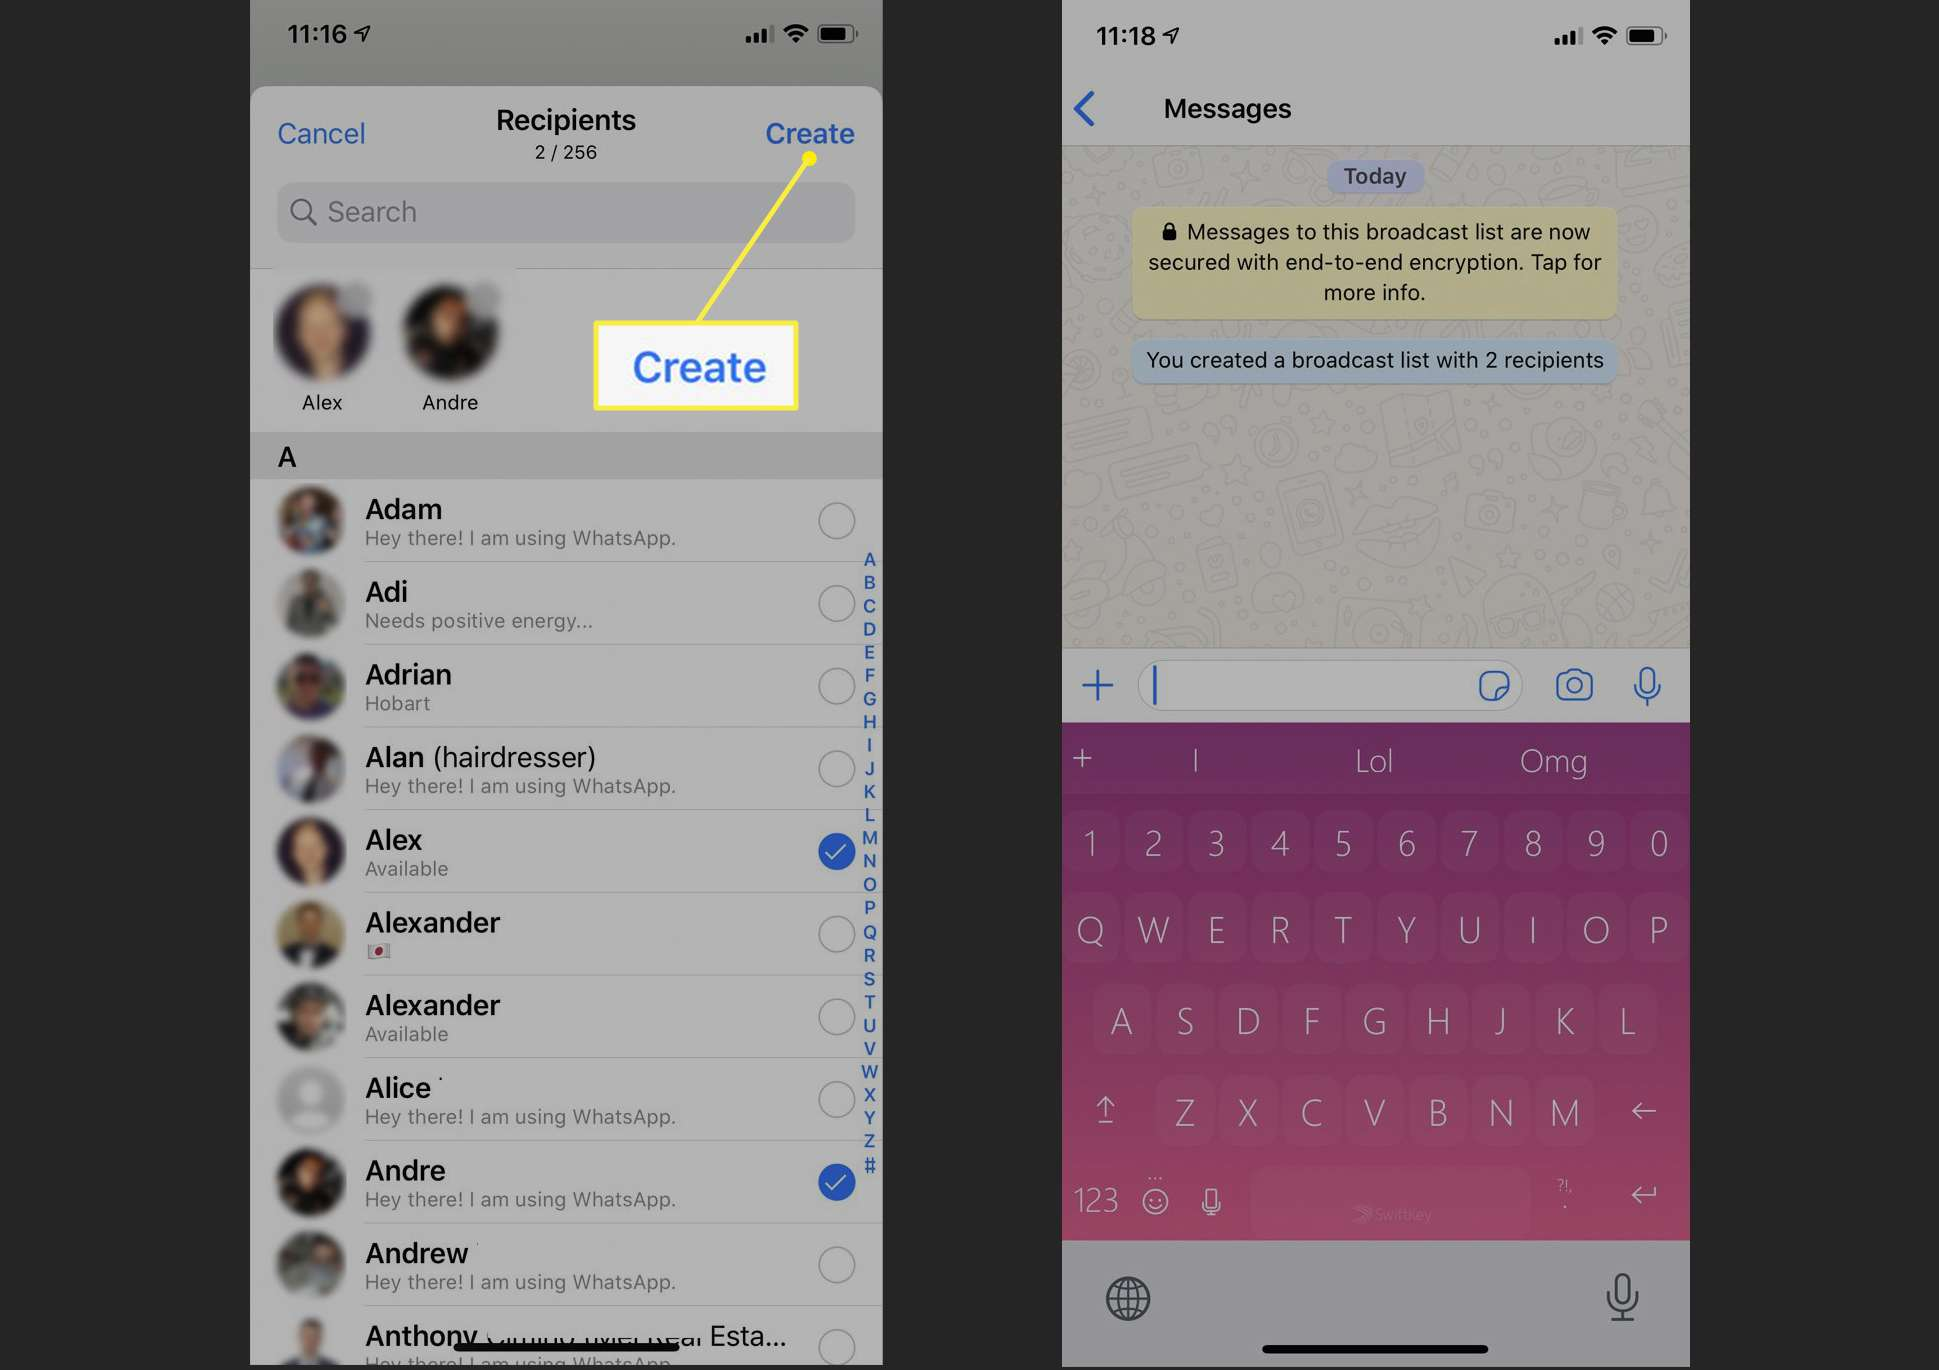 Process for creating a Broadcast List in the WhatsApp app on iPhone.